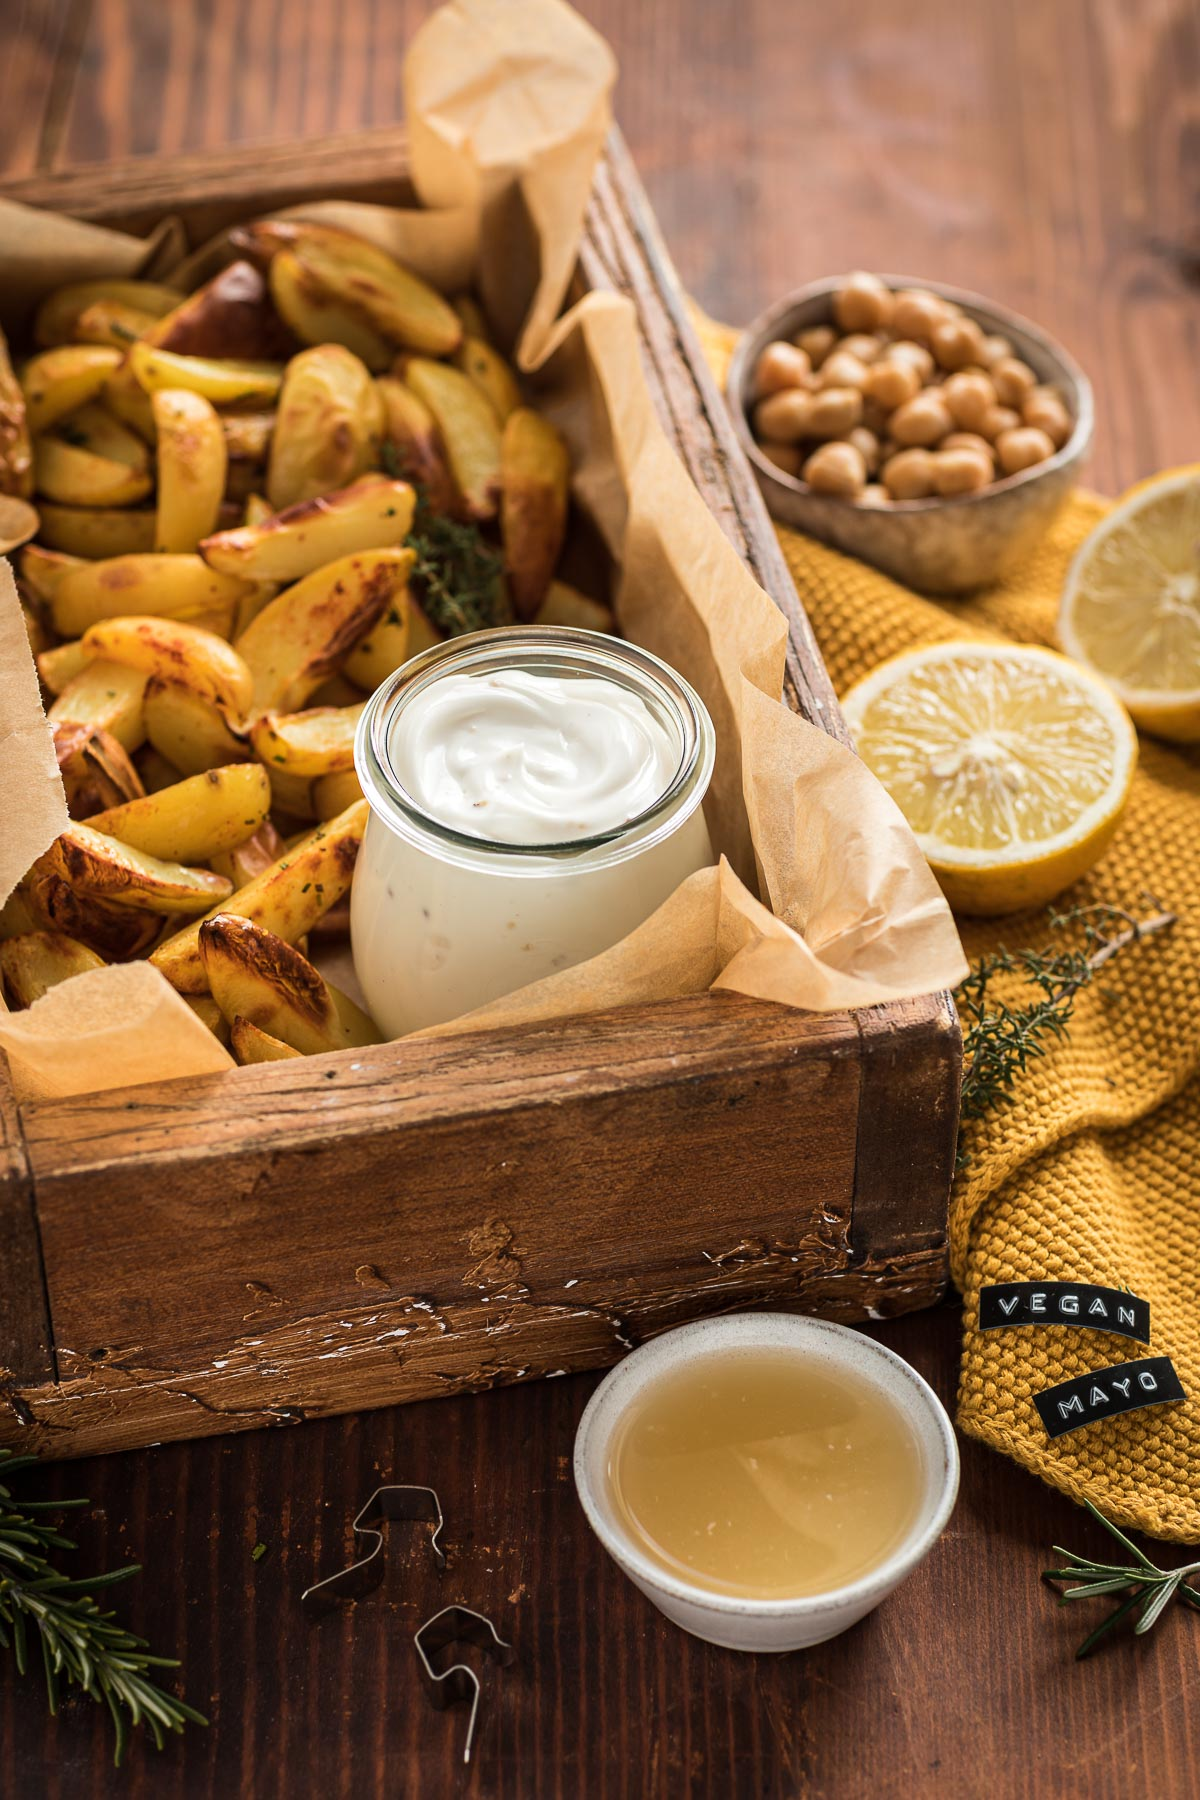 come fare la maionese vegana di aquafaba senza uova senza soia 2 minuti con patate al forno easy vegan mayonnaise with aquafaba soy-free mayo ready in 2 minutes with baked potatoes